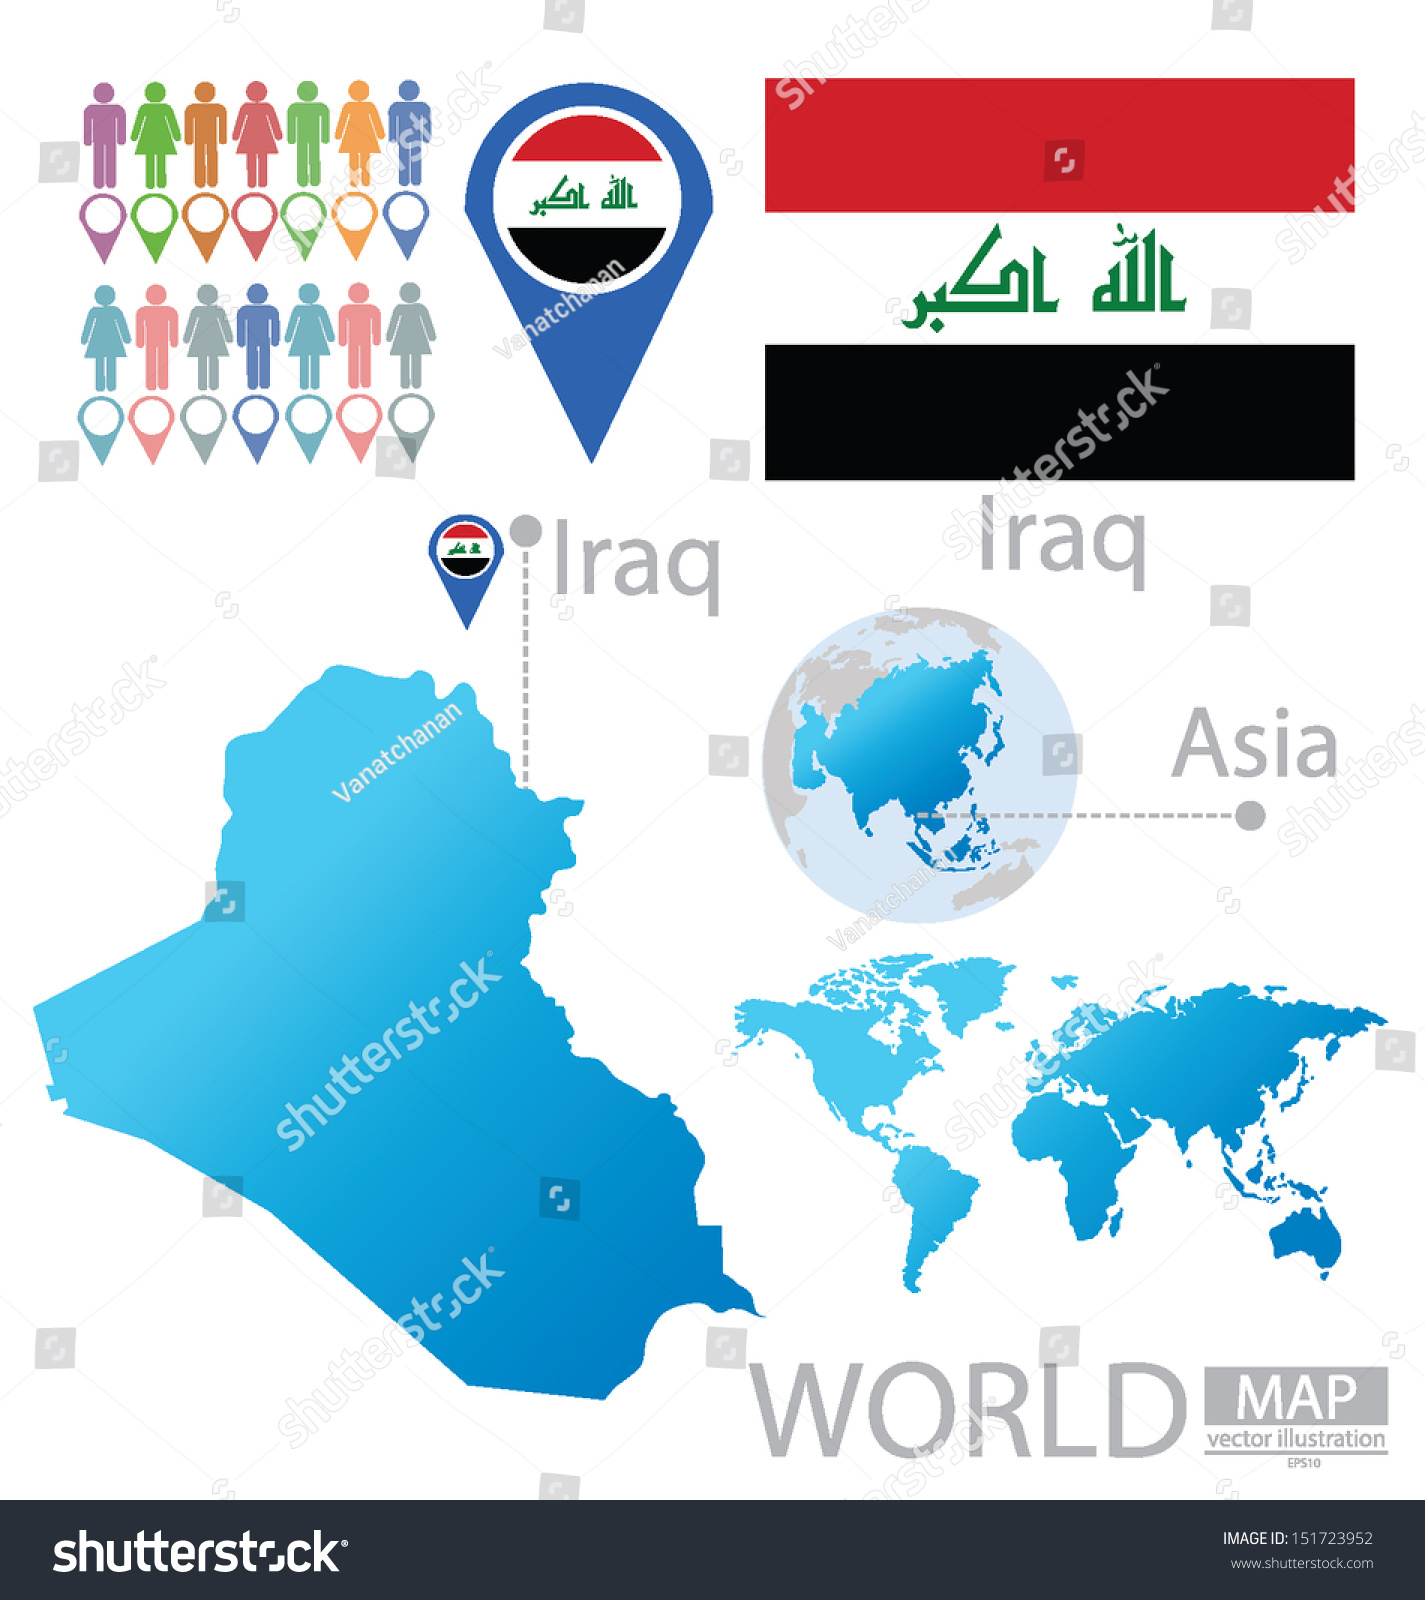 Iraq flag asia world map vector vector de stock151723952 shutterstock asia world map vector illustration gumiabroncs Images